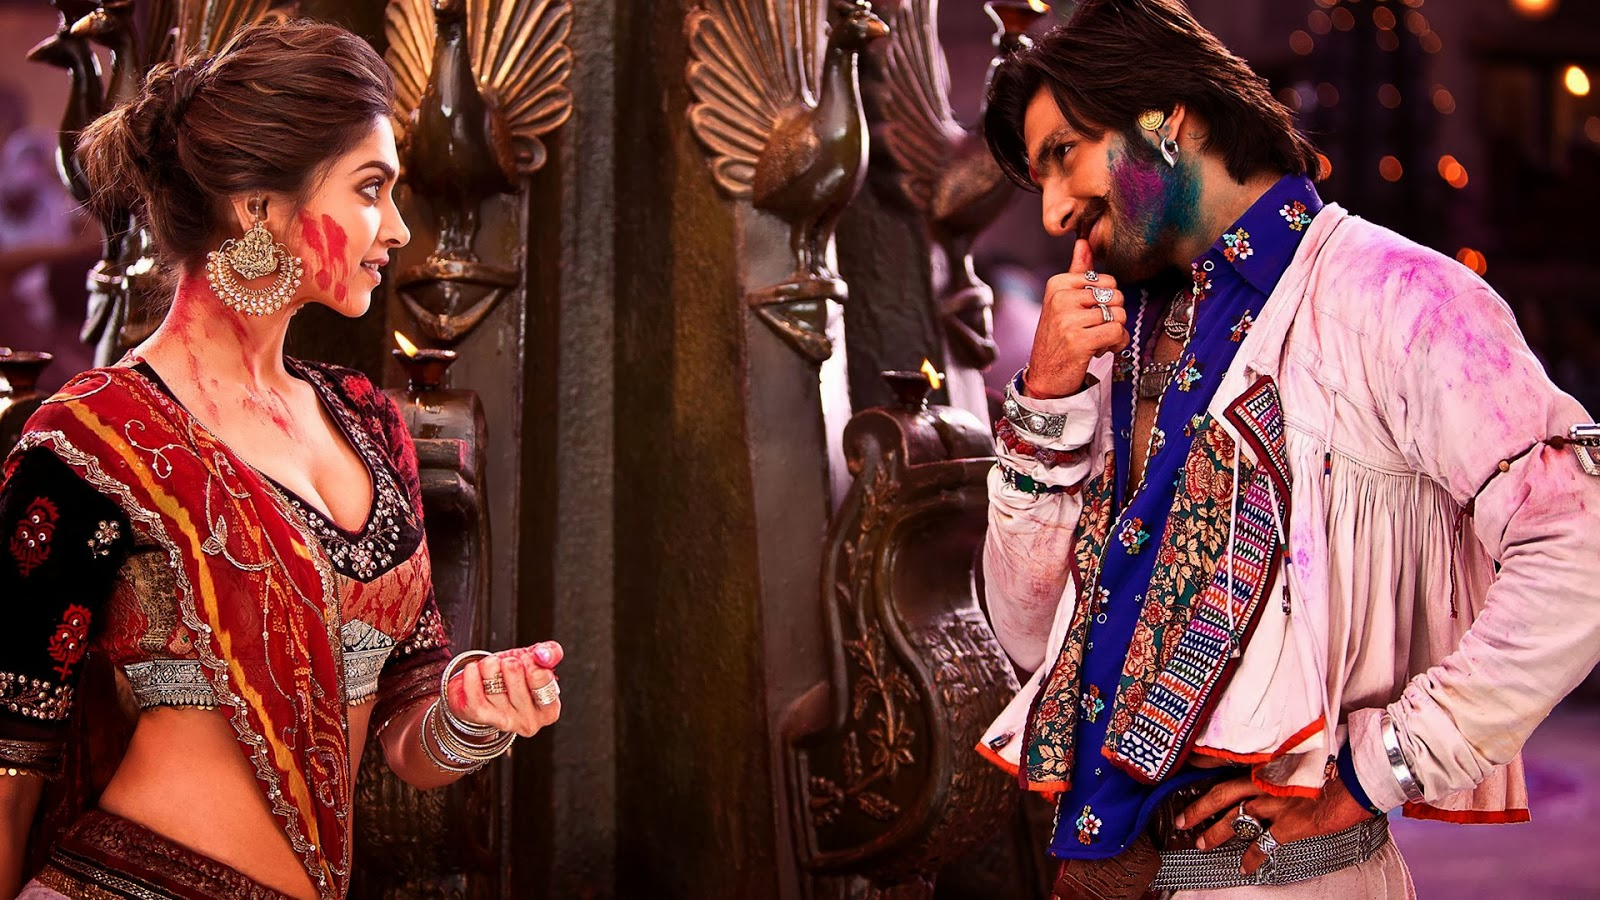 RAM LEELA MOVIE HD STILLS FT. DEEPIKA PADUKONE & RANVEER ...